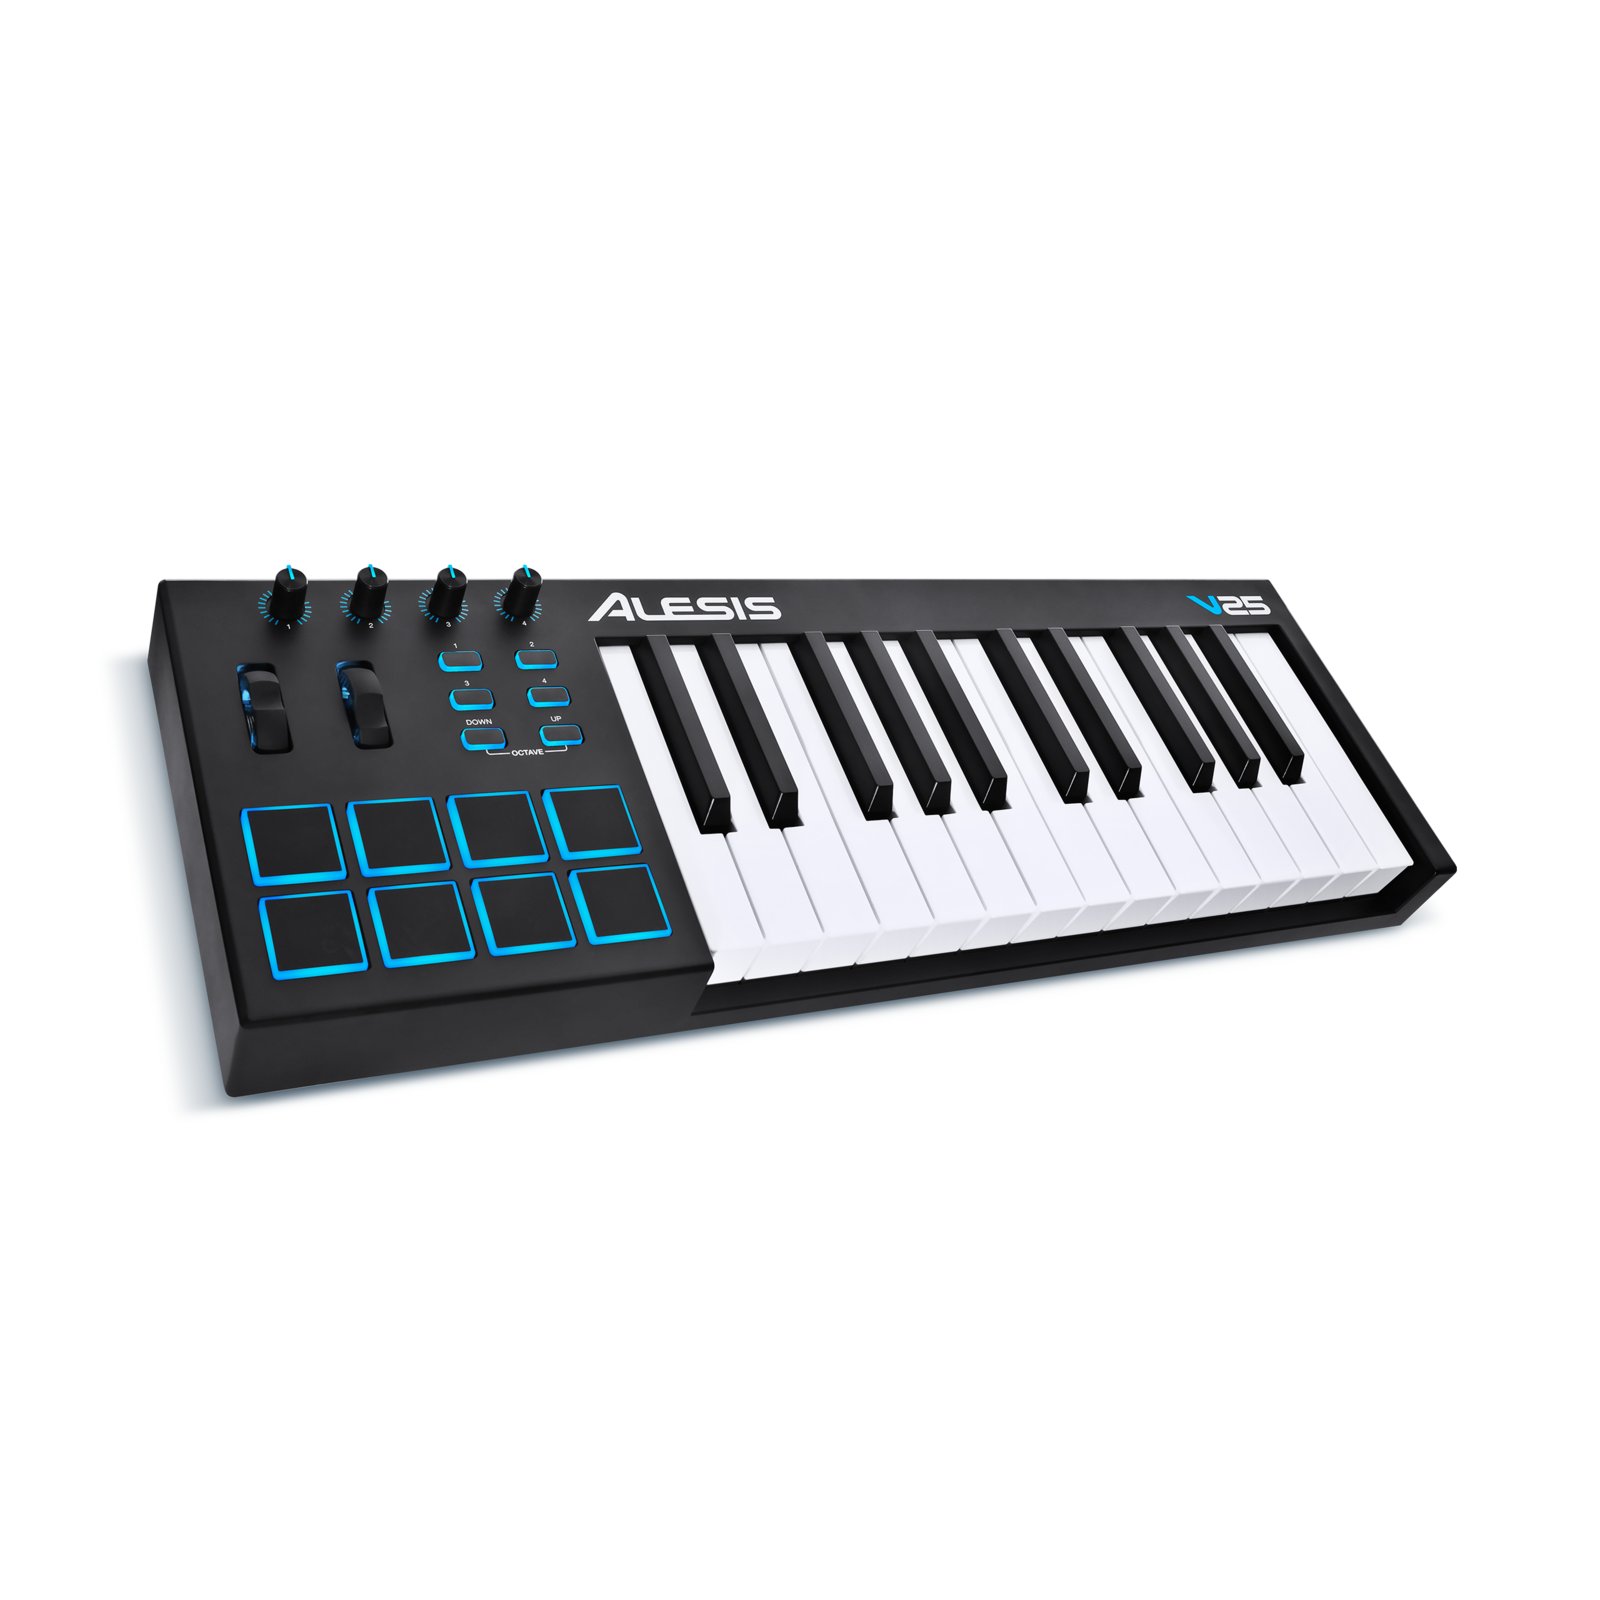 ALESIS V25 25 KEY USB KEYBOARD AND PAD CONTROLLER